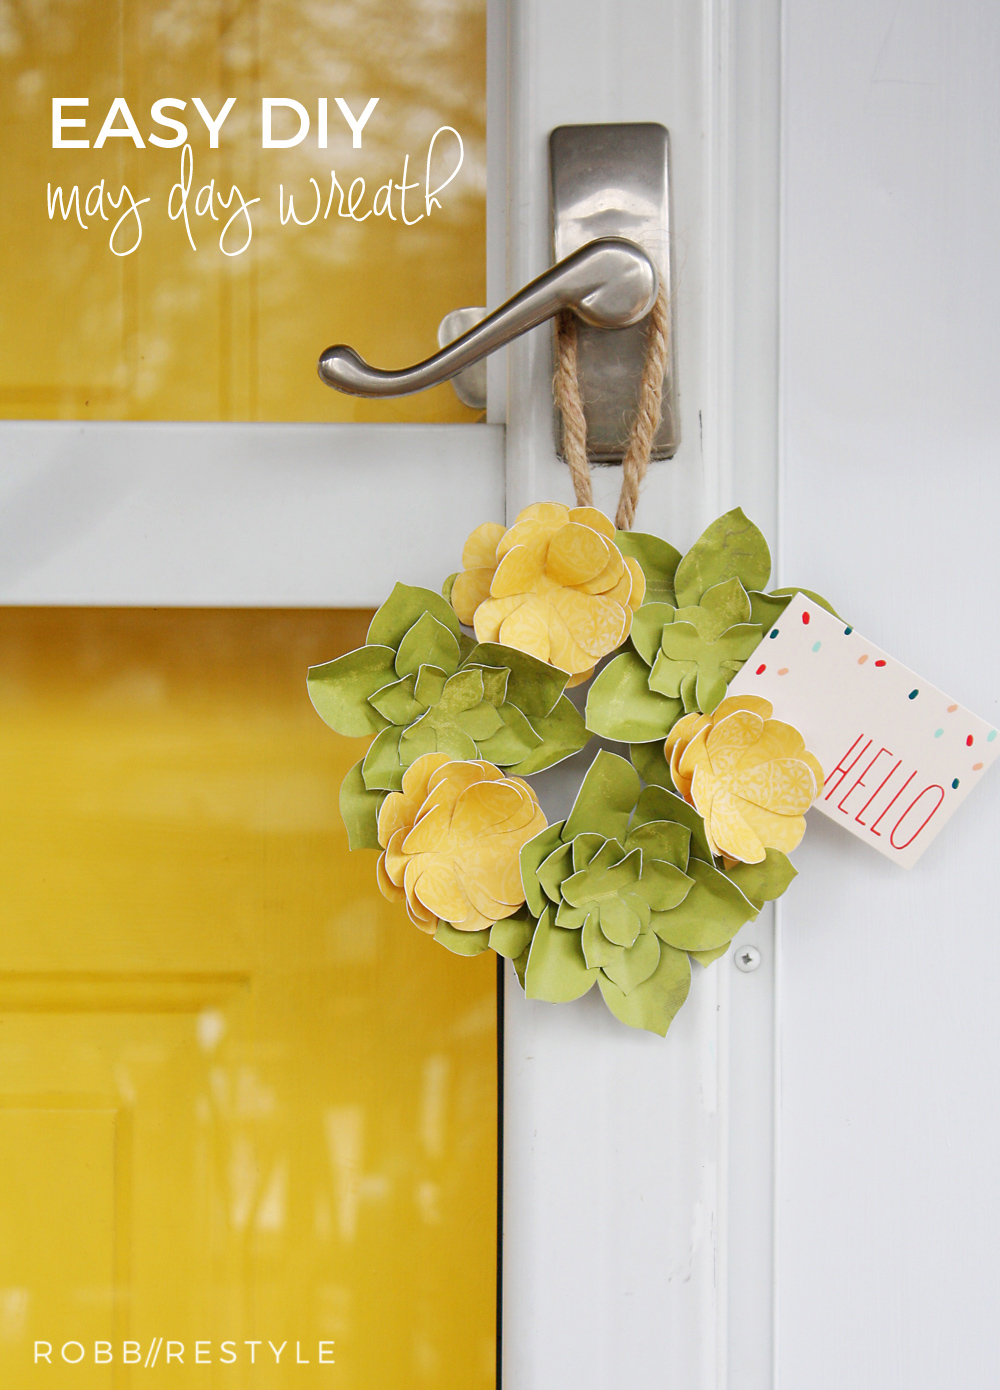 Easy DIY May Day Wreath